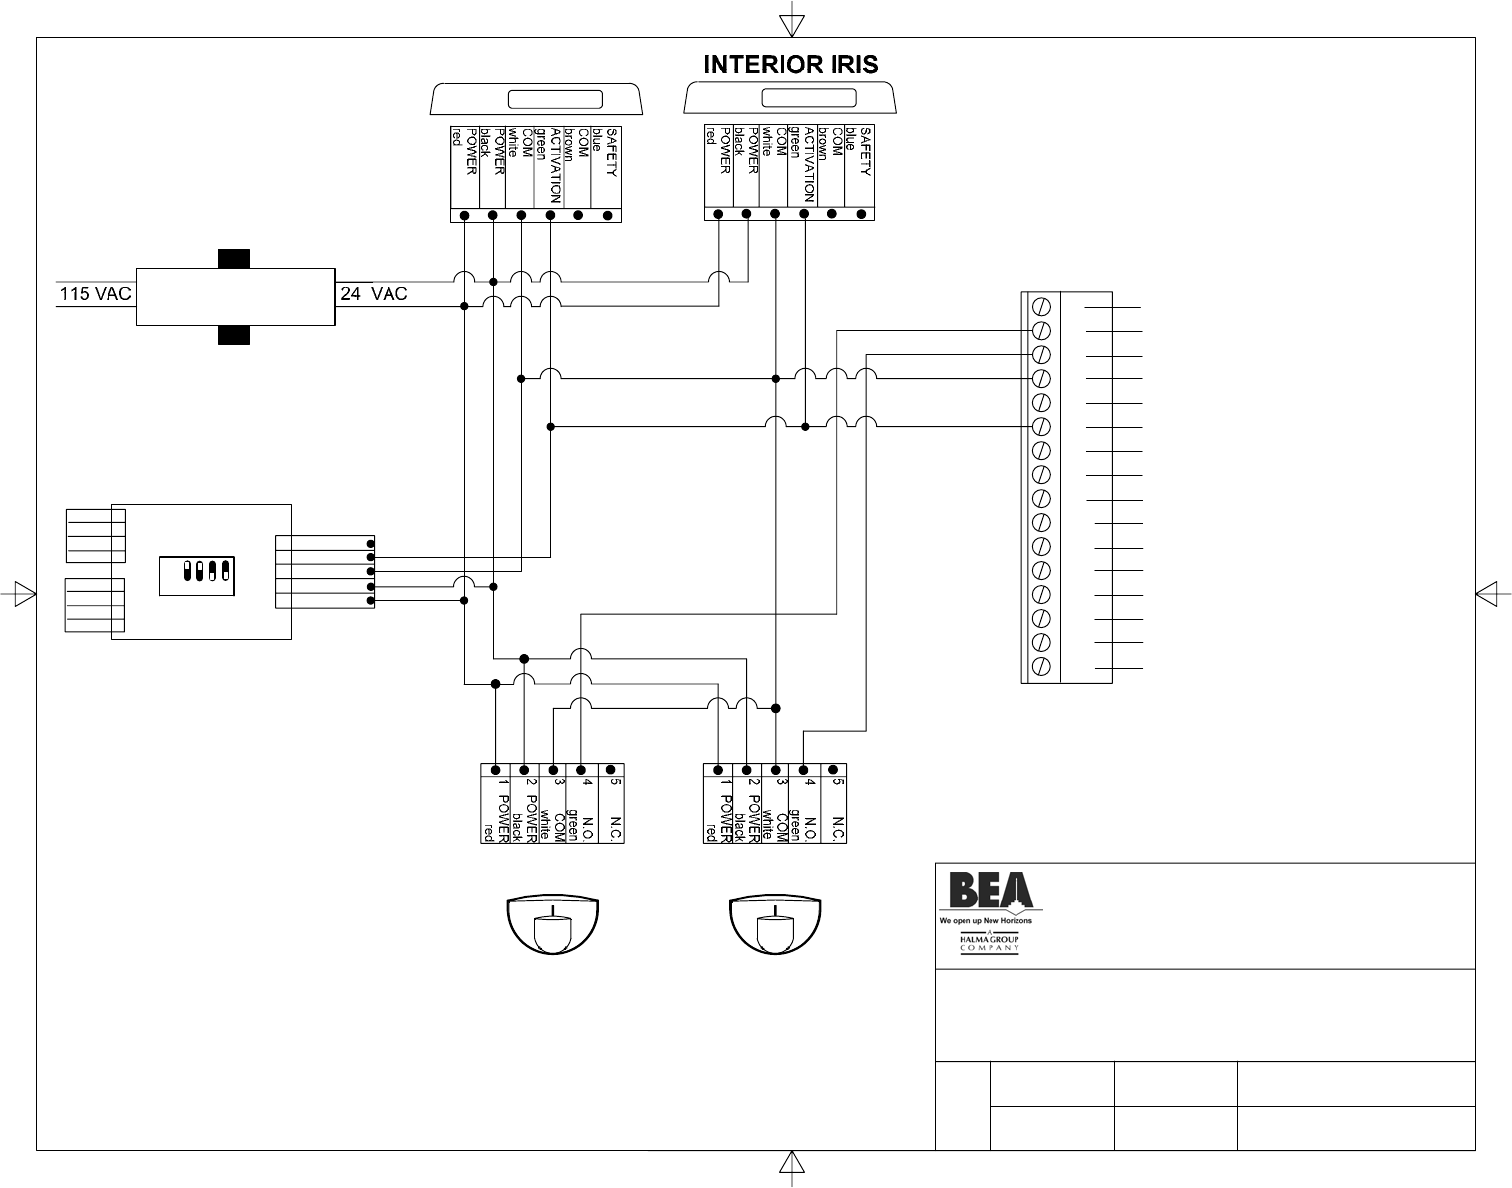 bea ixio wiring diagram   23 wiring diagram images